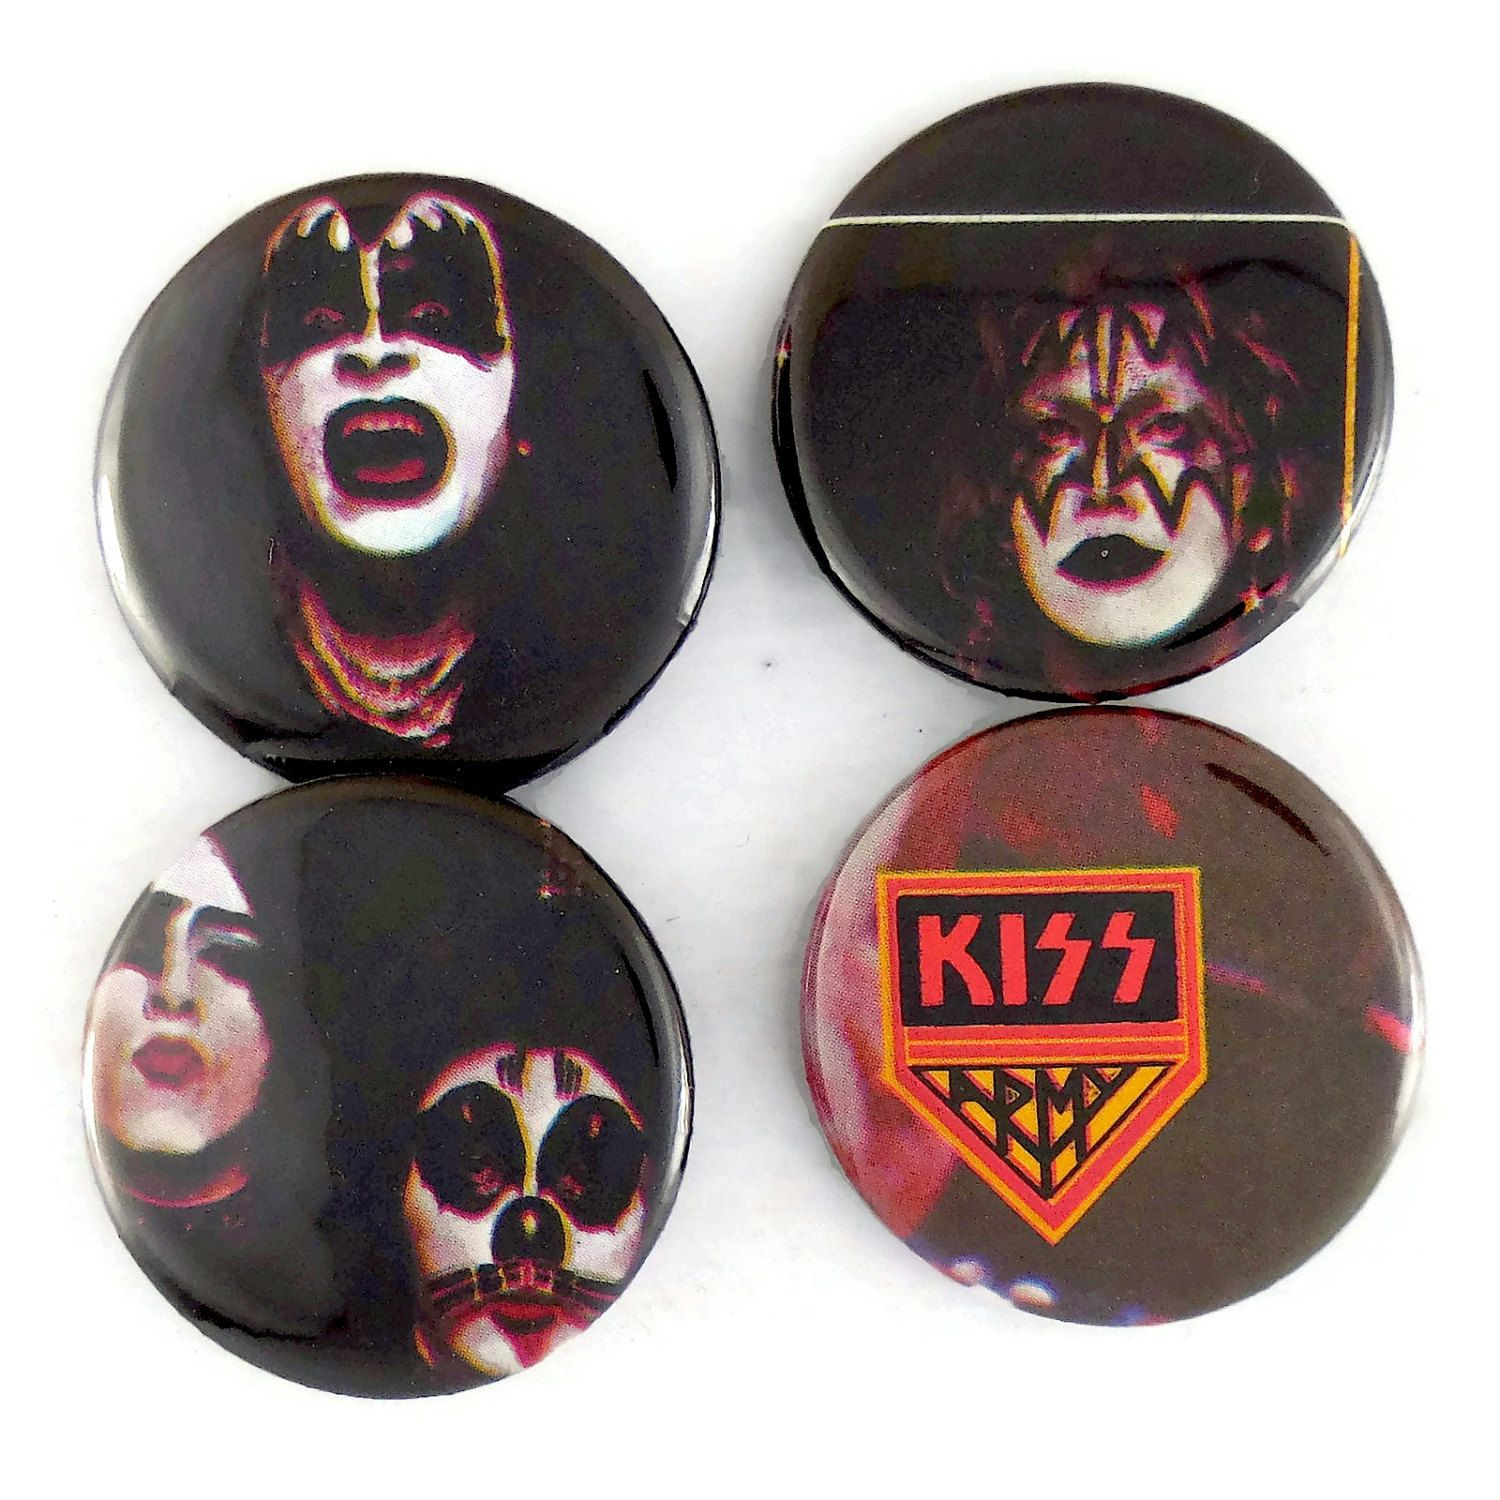 KISS Army Pins Original 70s Classic Rock Music Badges Gene Simmons Glam Buttons by JeepsterVintage on Etsy